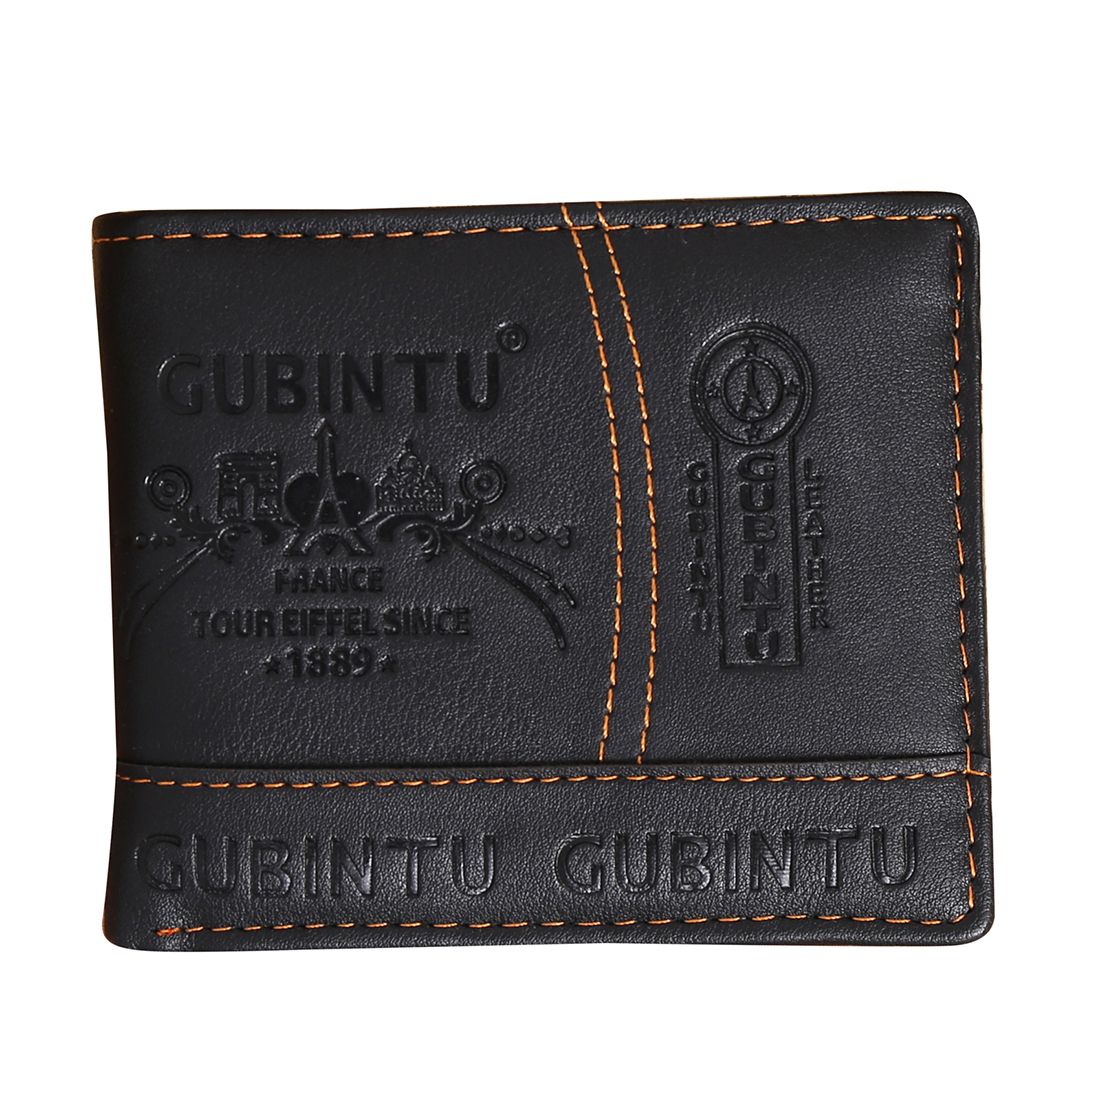 5x Slim Leather Mens Wallet Man Cowhide Cover Coin Purse Small Brand Male Credit&id Multifunctional Walets